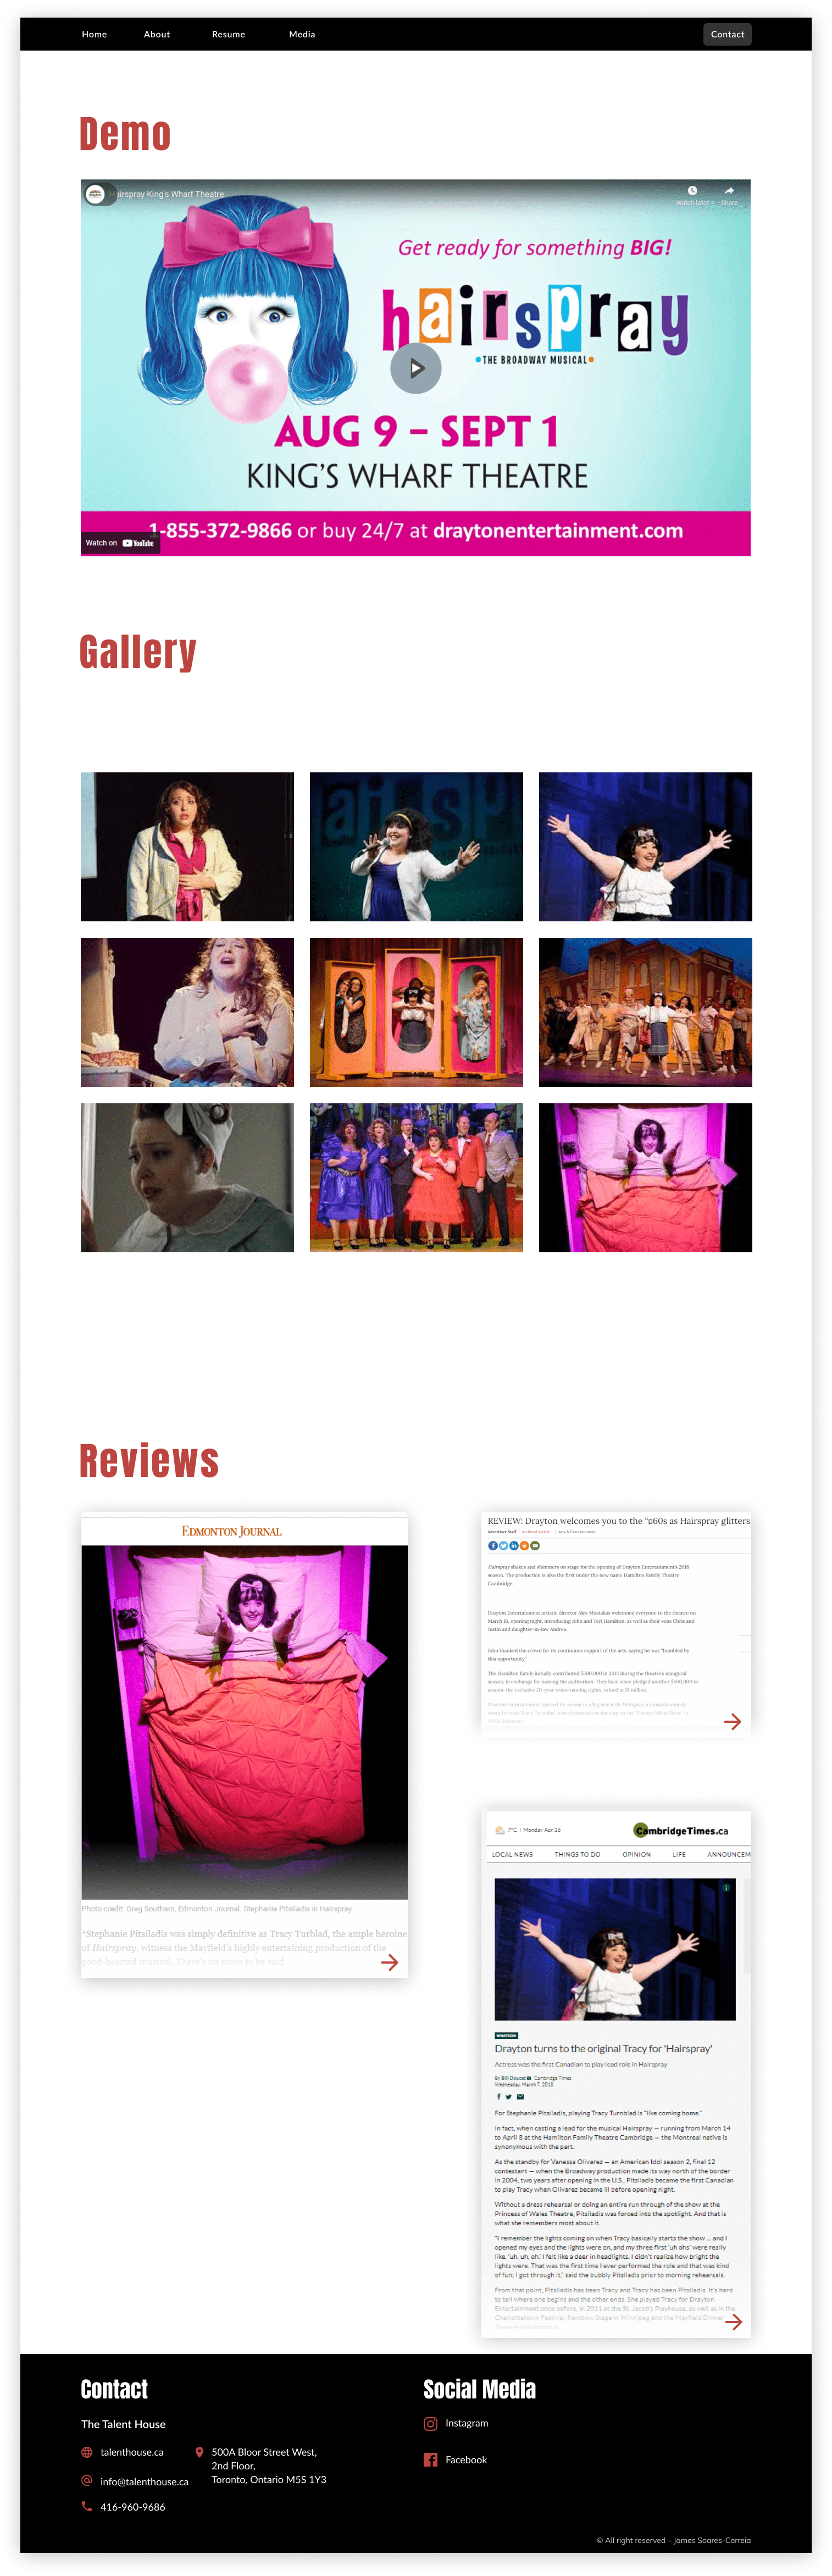 Screen shot of an actor's media page meant to showcase their demo reel, pictures of performances, and reviews of their work.